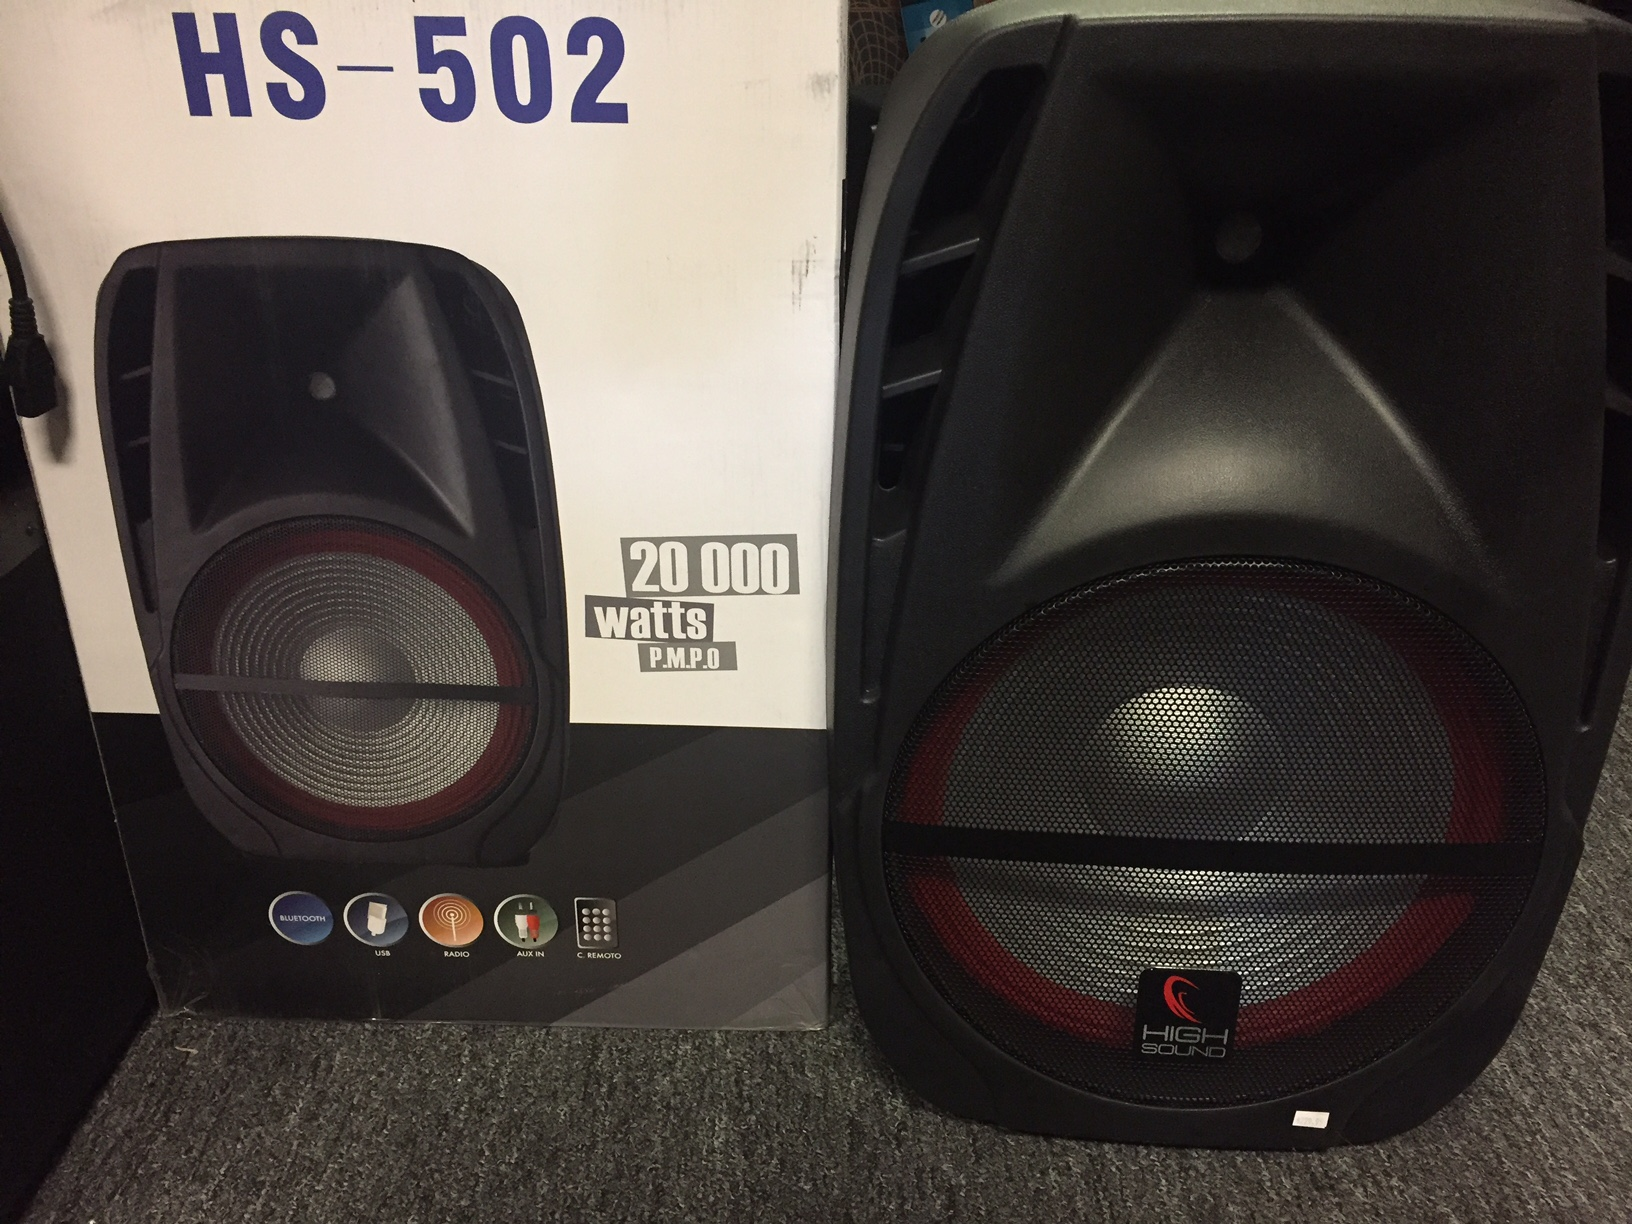 High sound Hs-502 | demo powered loudspeaker | Bluetooth | Mic | built in  led light show | Mp3 | No shipping - Rocktown Music